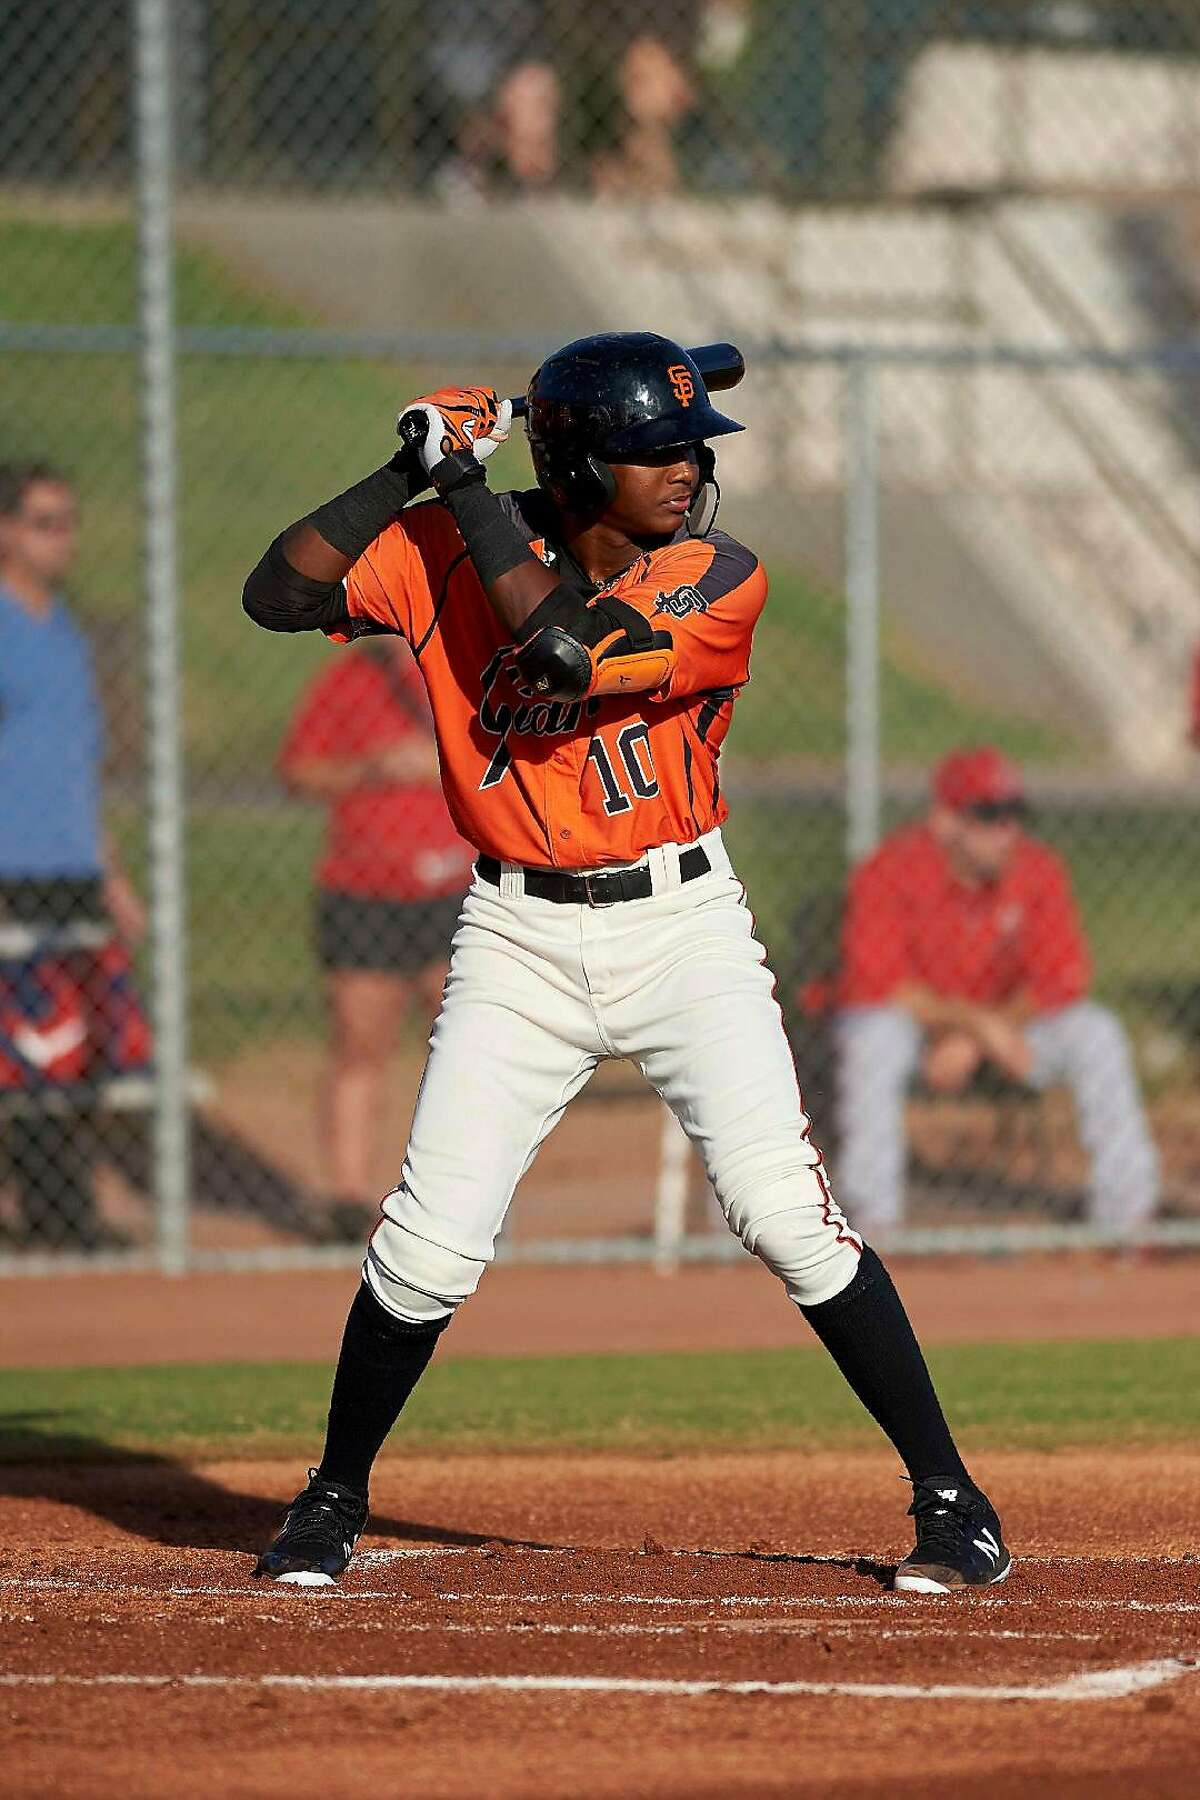 San Francisco Giants prospect Marco Luciano, appeared in 38 games in rookie ball in 2019 and and collected 10 homers and 38 RBIs and led the league by scoring 46 runs.